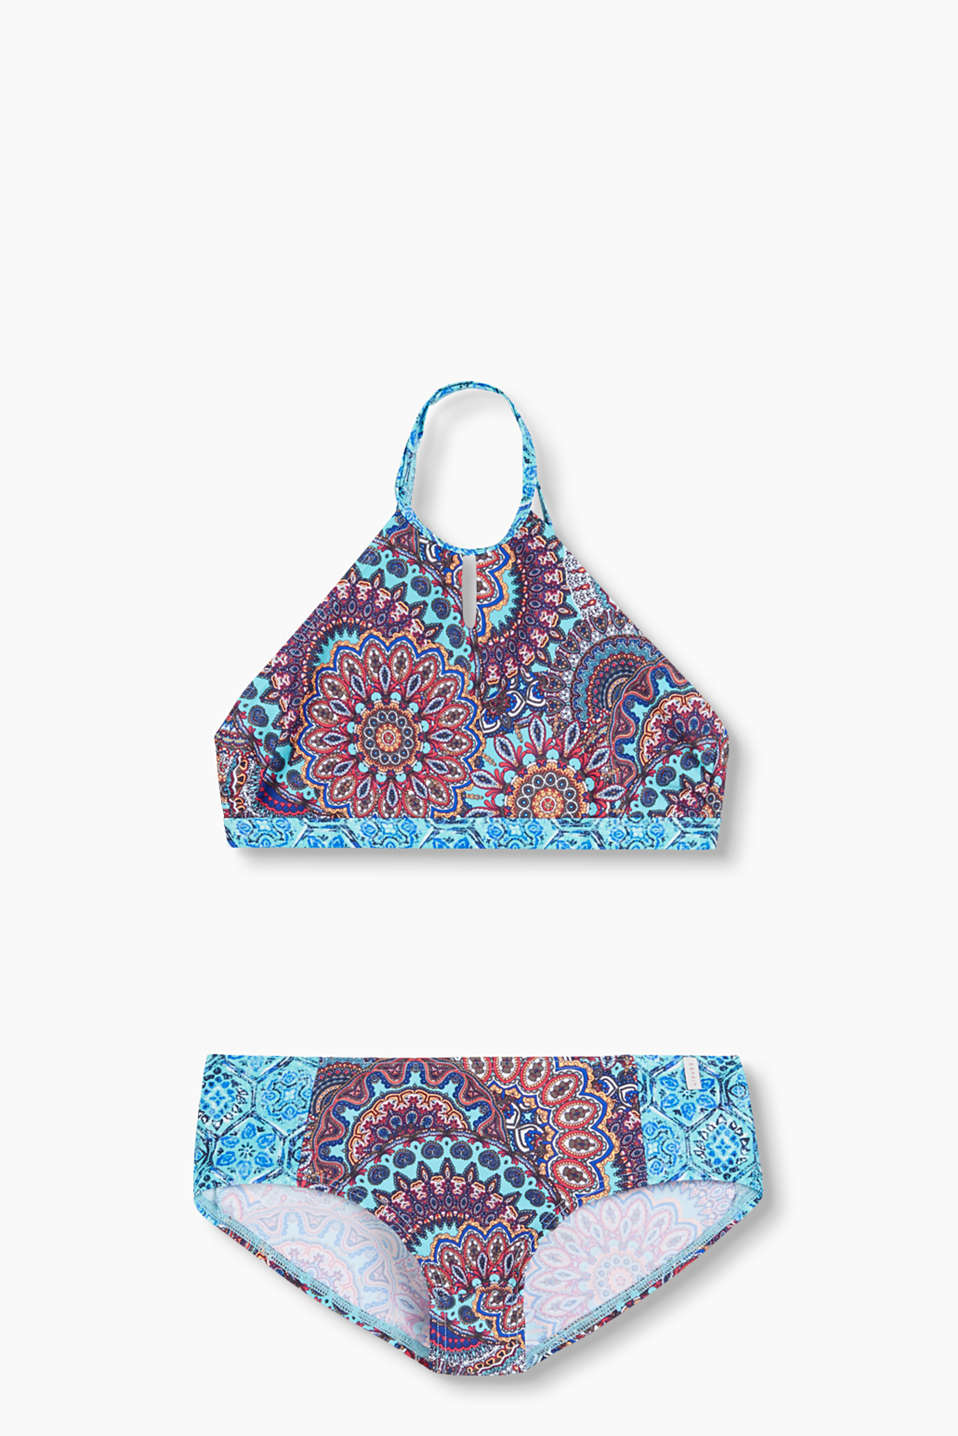 made of quick-drying, blended material with an oriental, ethnic print